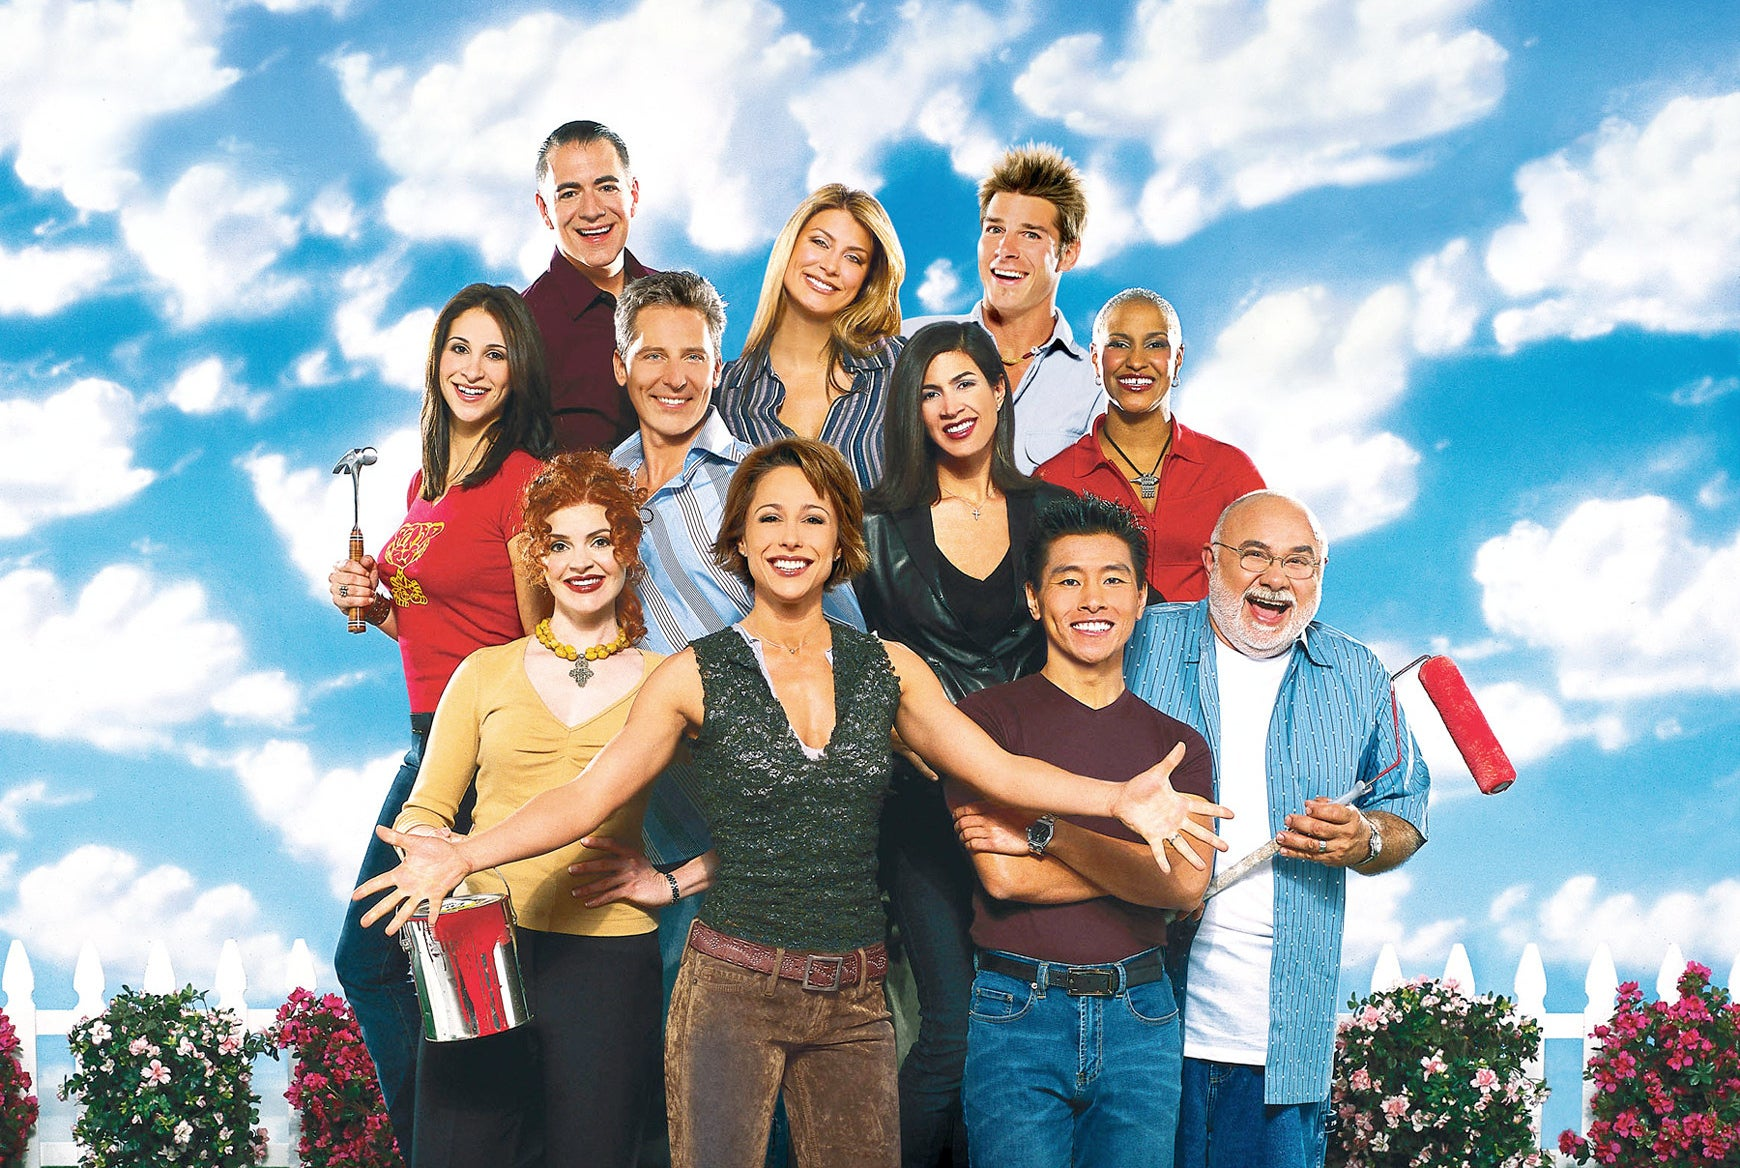 A photo of the cast of Trading Spaces